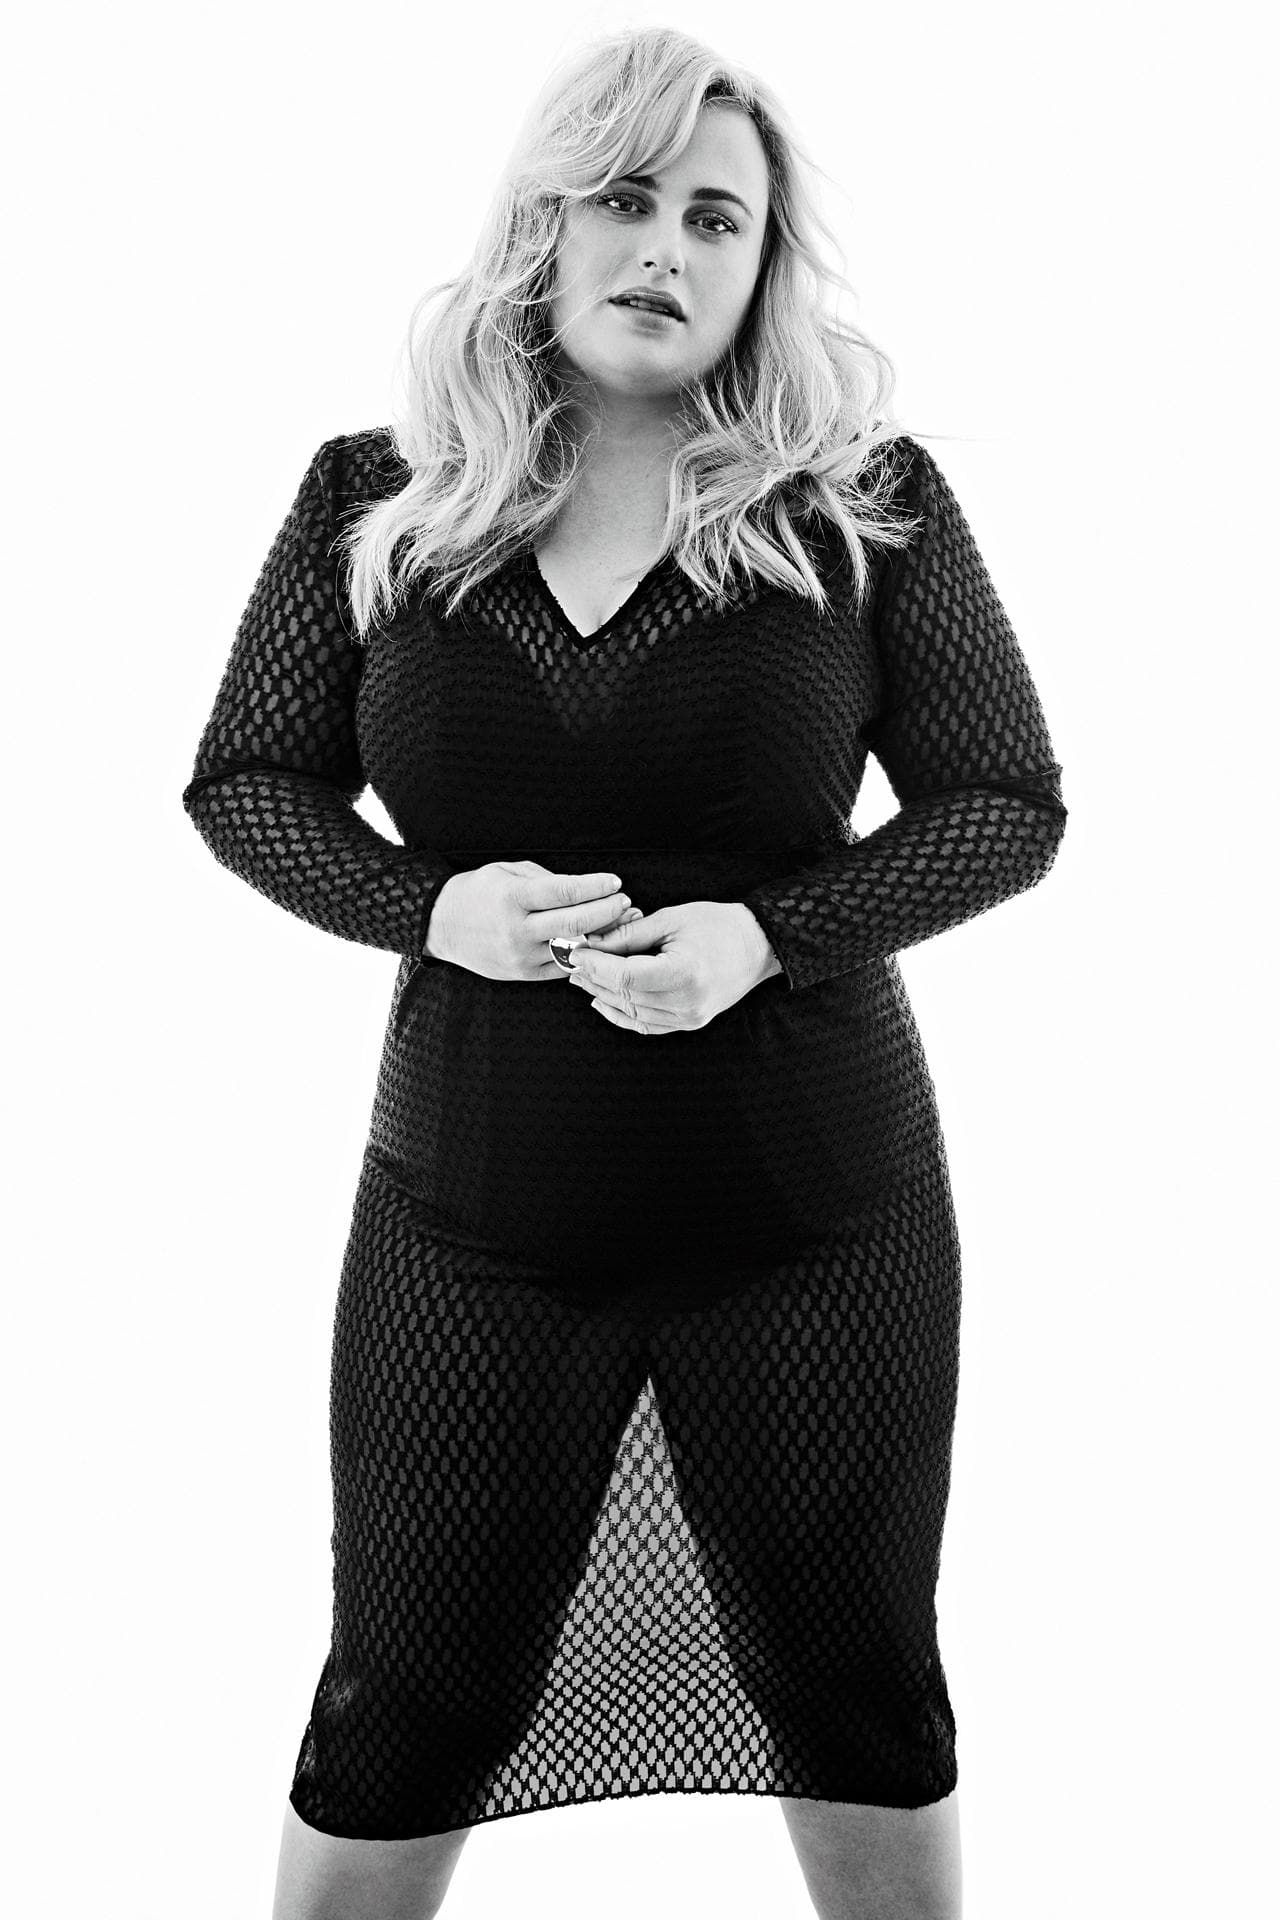 Rebel Wilson on winning battles, producing films and dating in Hollywood